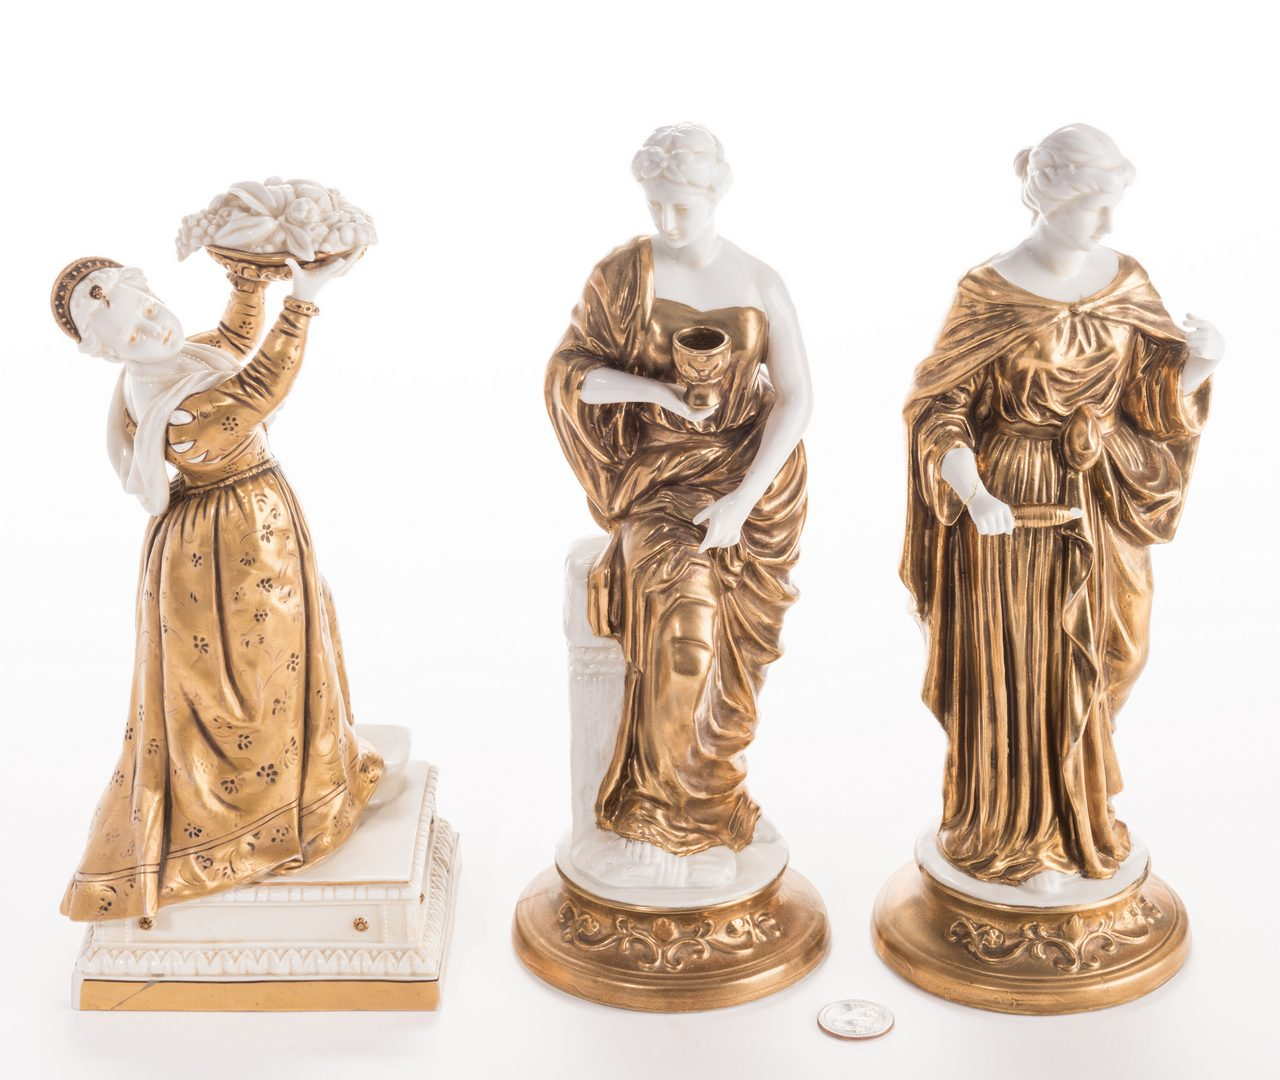 Lot 641: 3 Blanc De Chine Gilt Decorated Female Figures